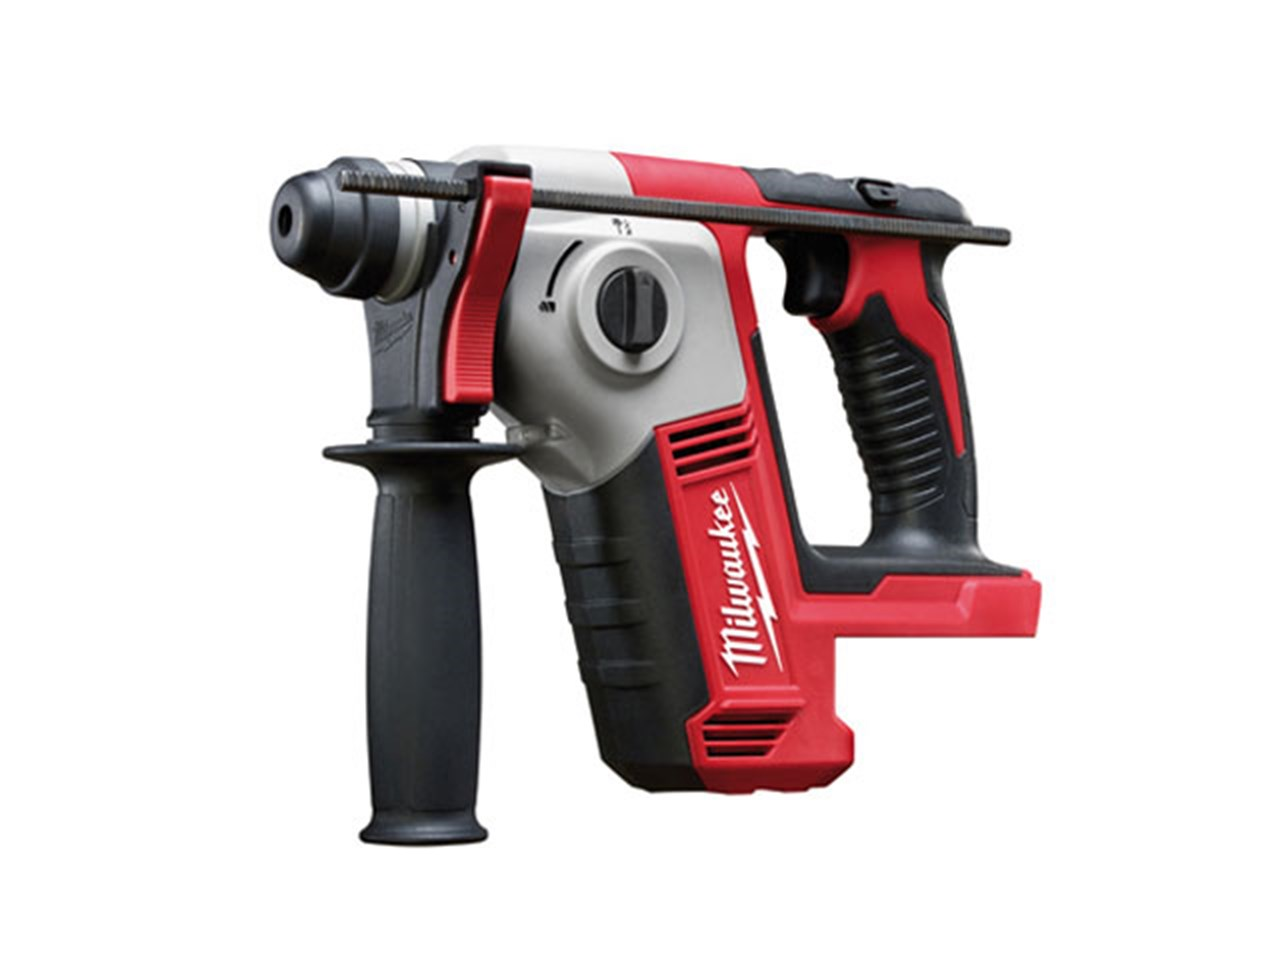 MILWAUKEE 18V COMPACT SDS+ 2 MODE ROTARY HAMMER - M18BH - BODY ONLY